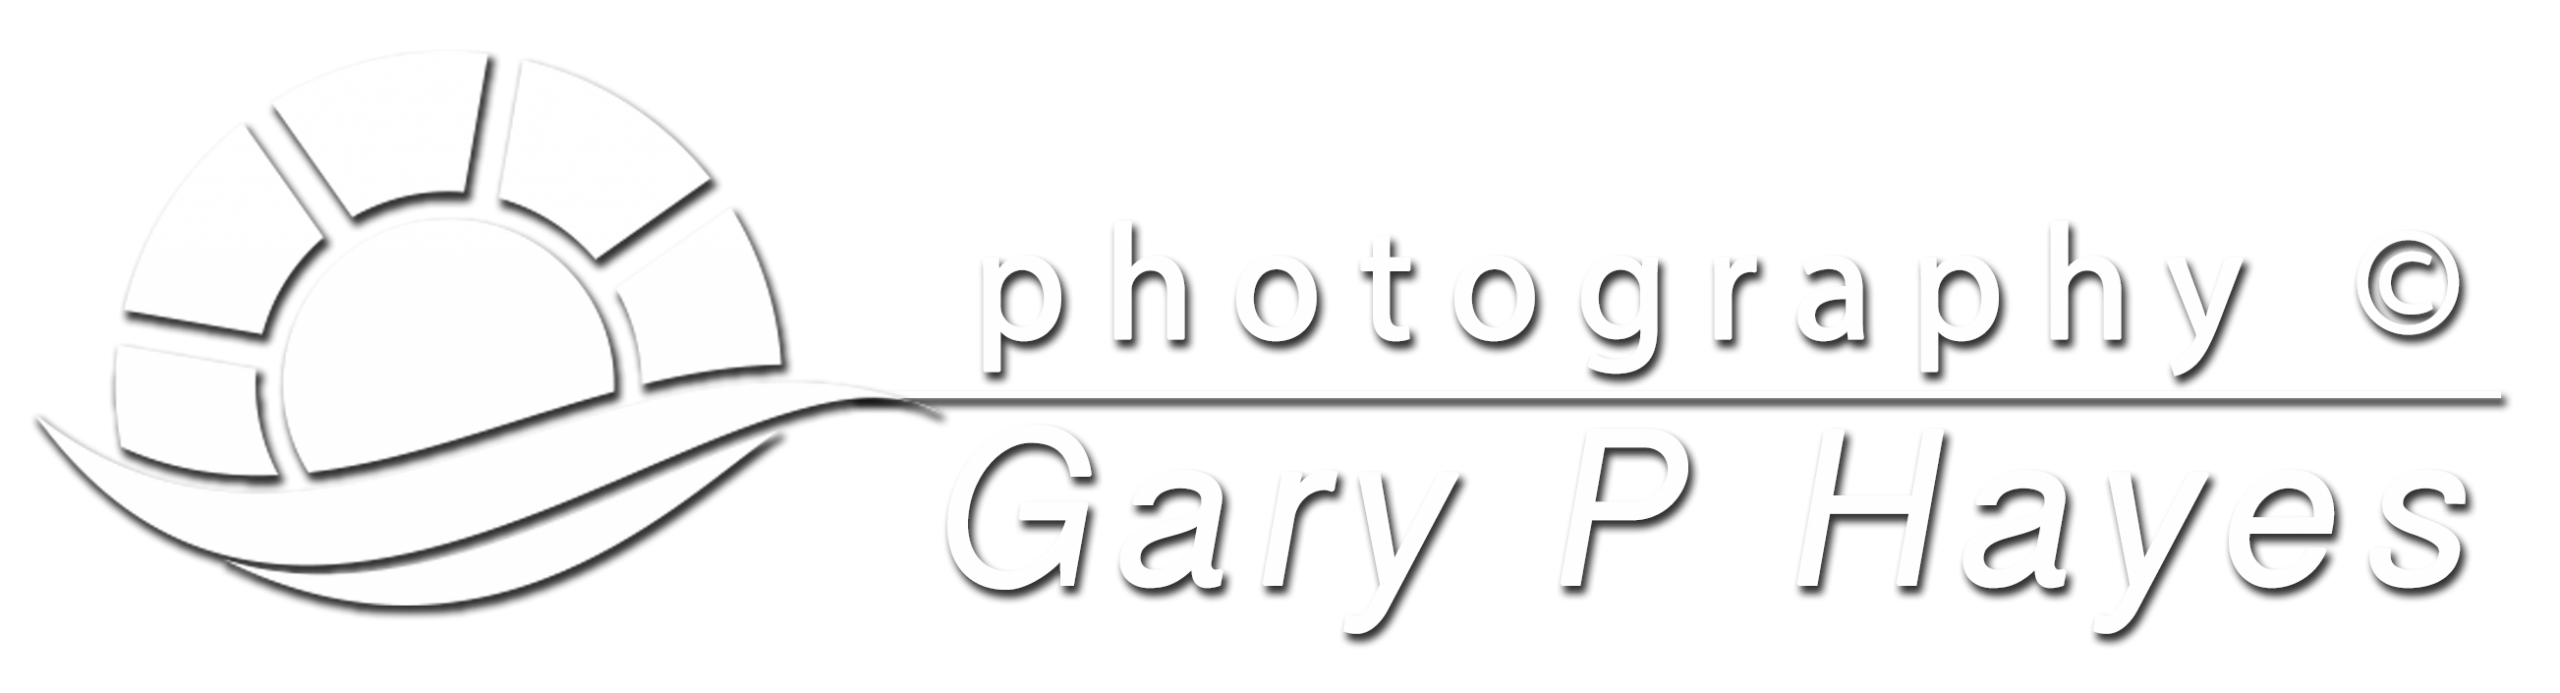 Gary P Hayes Photography